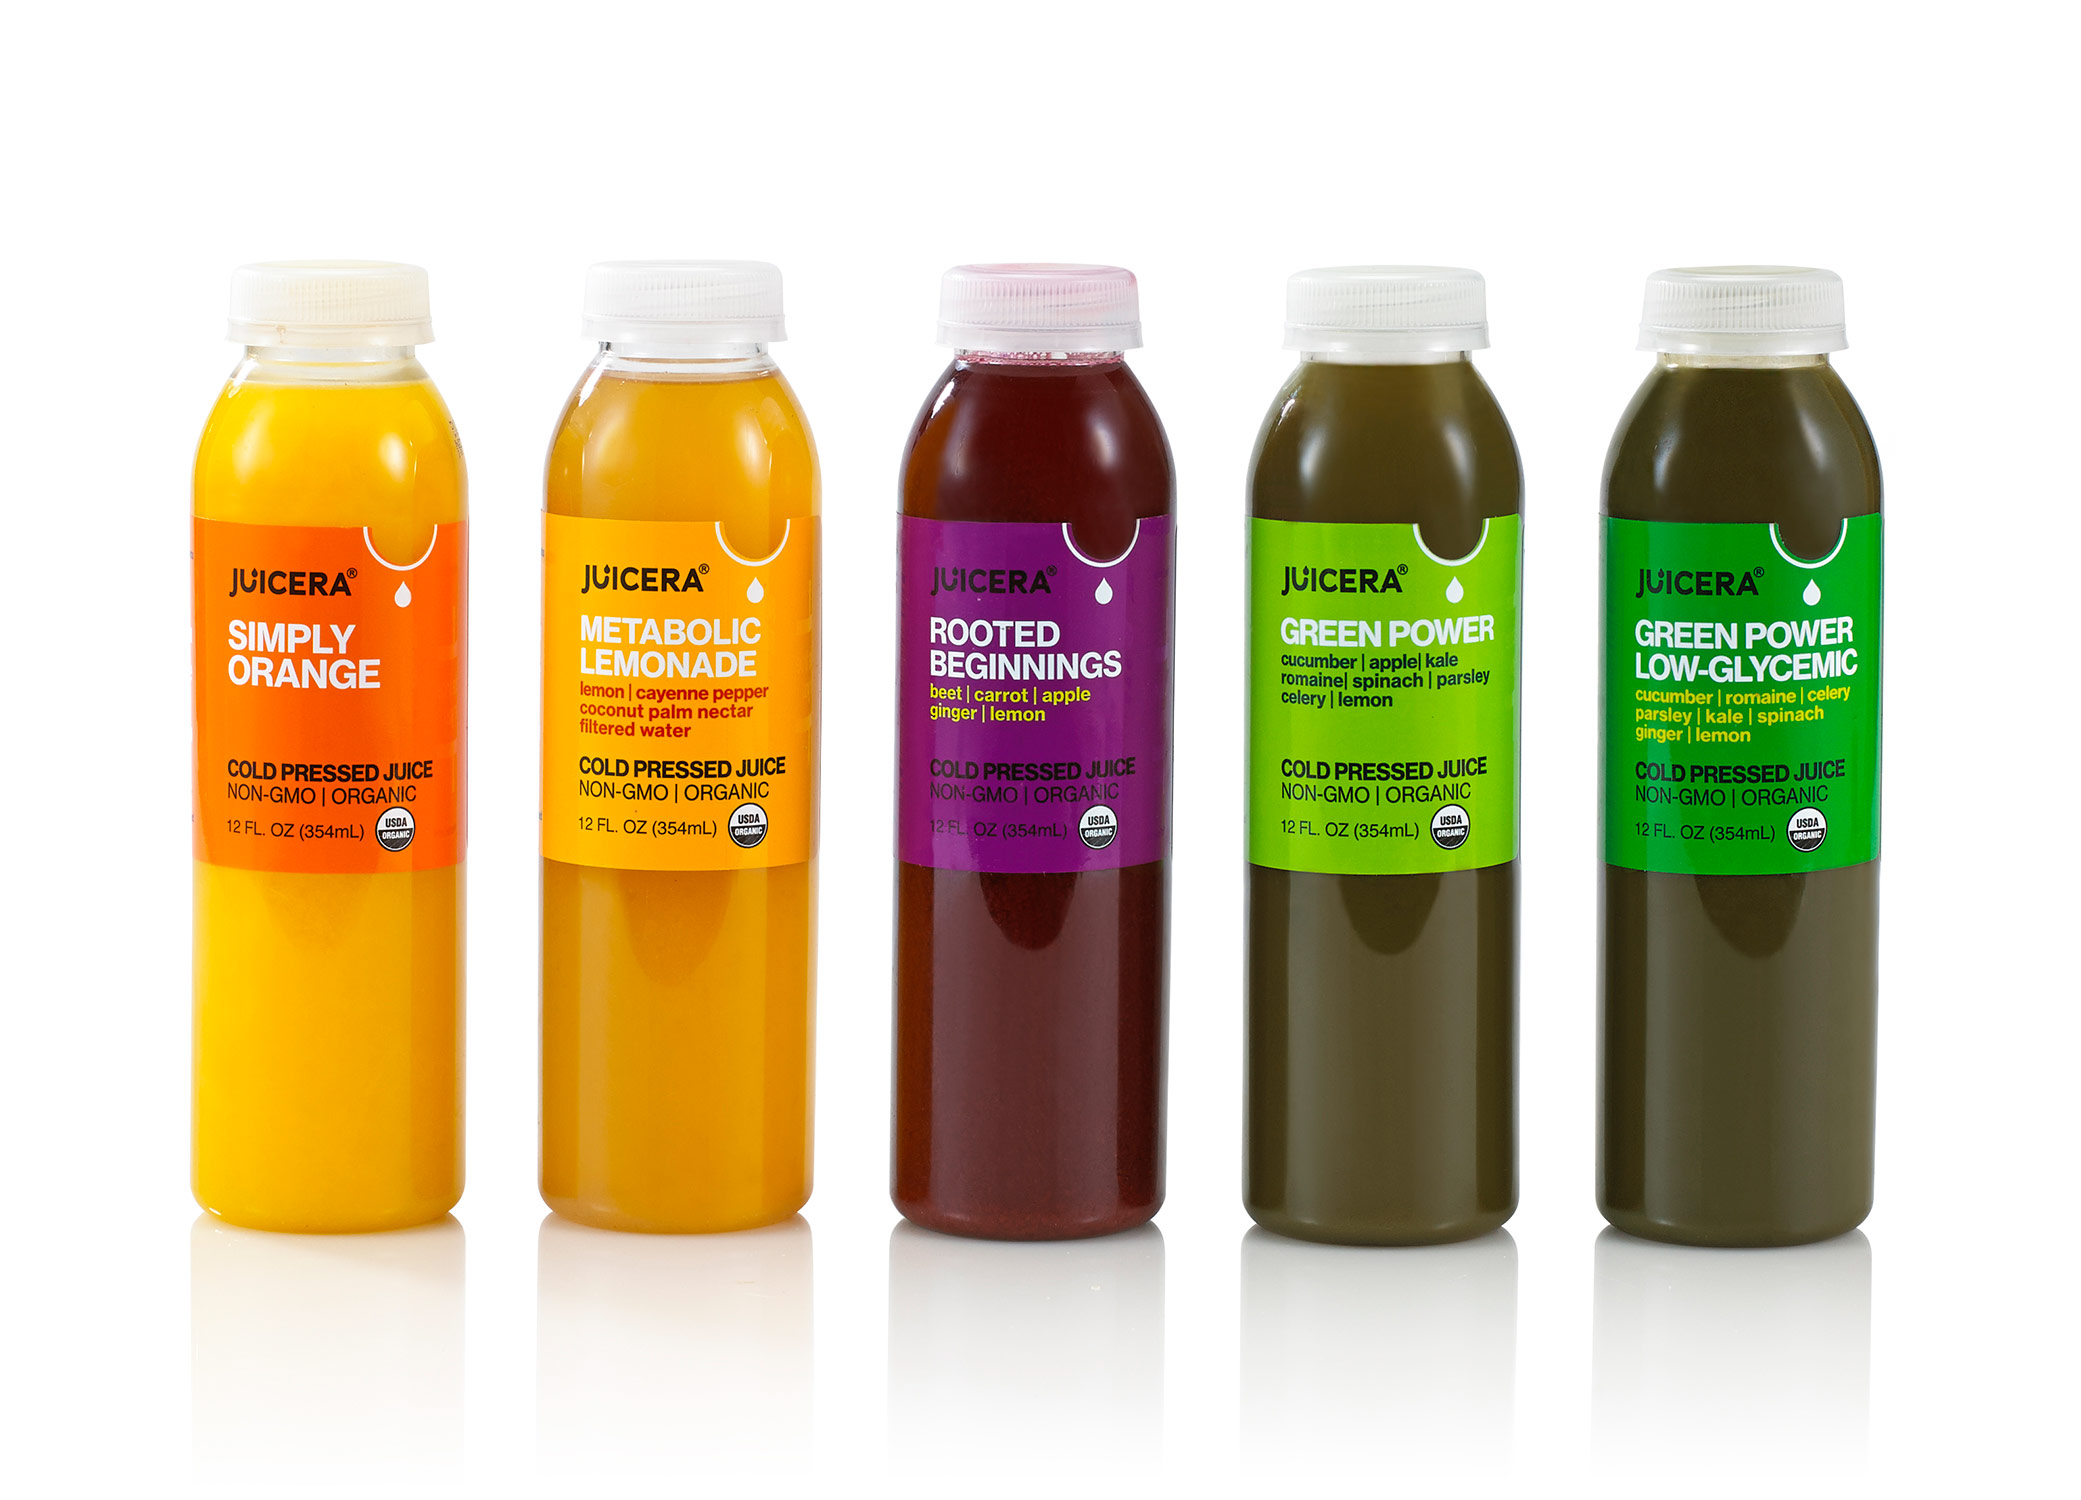 Juicera food package design showcasing 5 different flavors in a row with bottle labels in yellow, purple, and green.